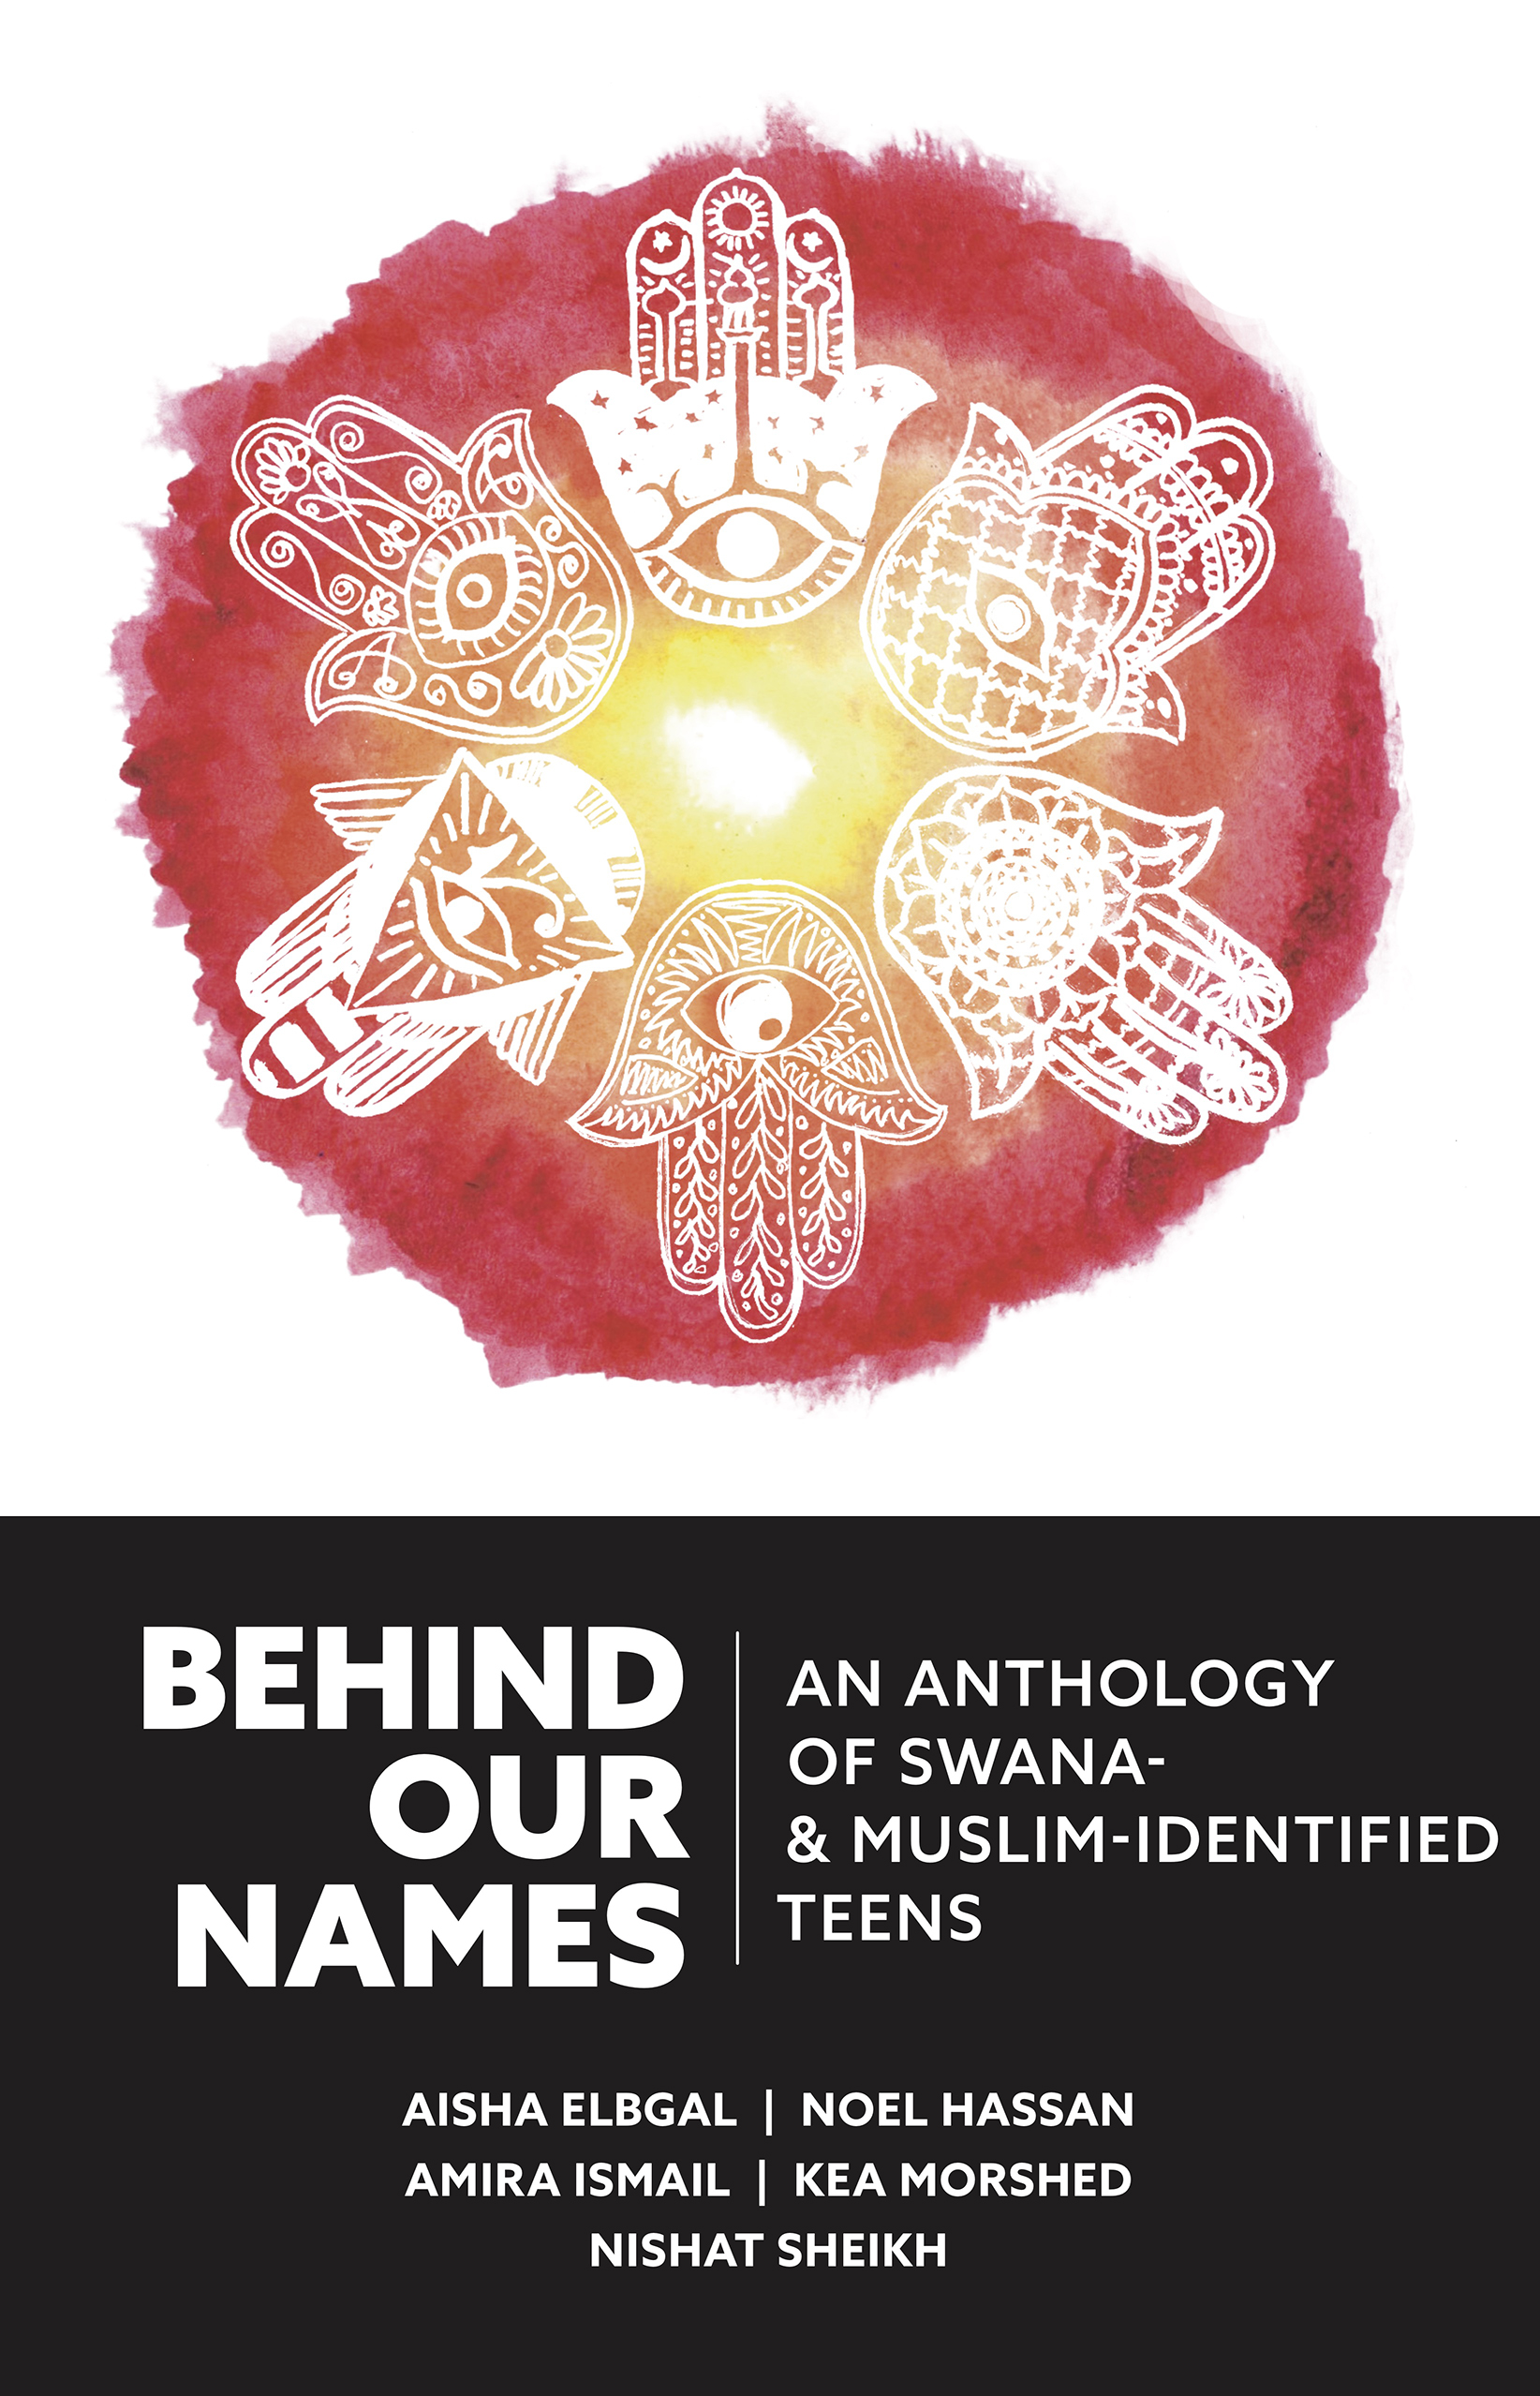 Behind Our Names: An Anthology of SWANA- & Muslim-Identified Teens